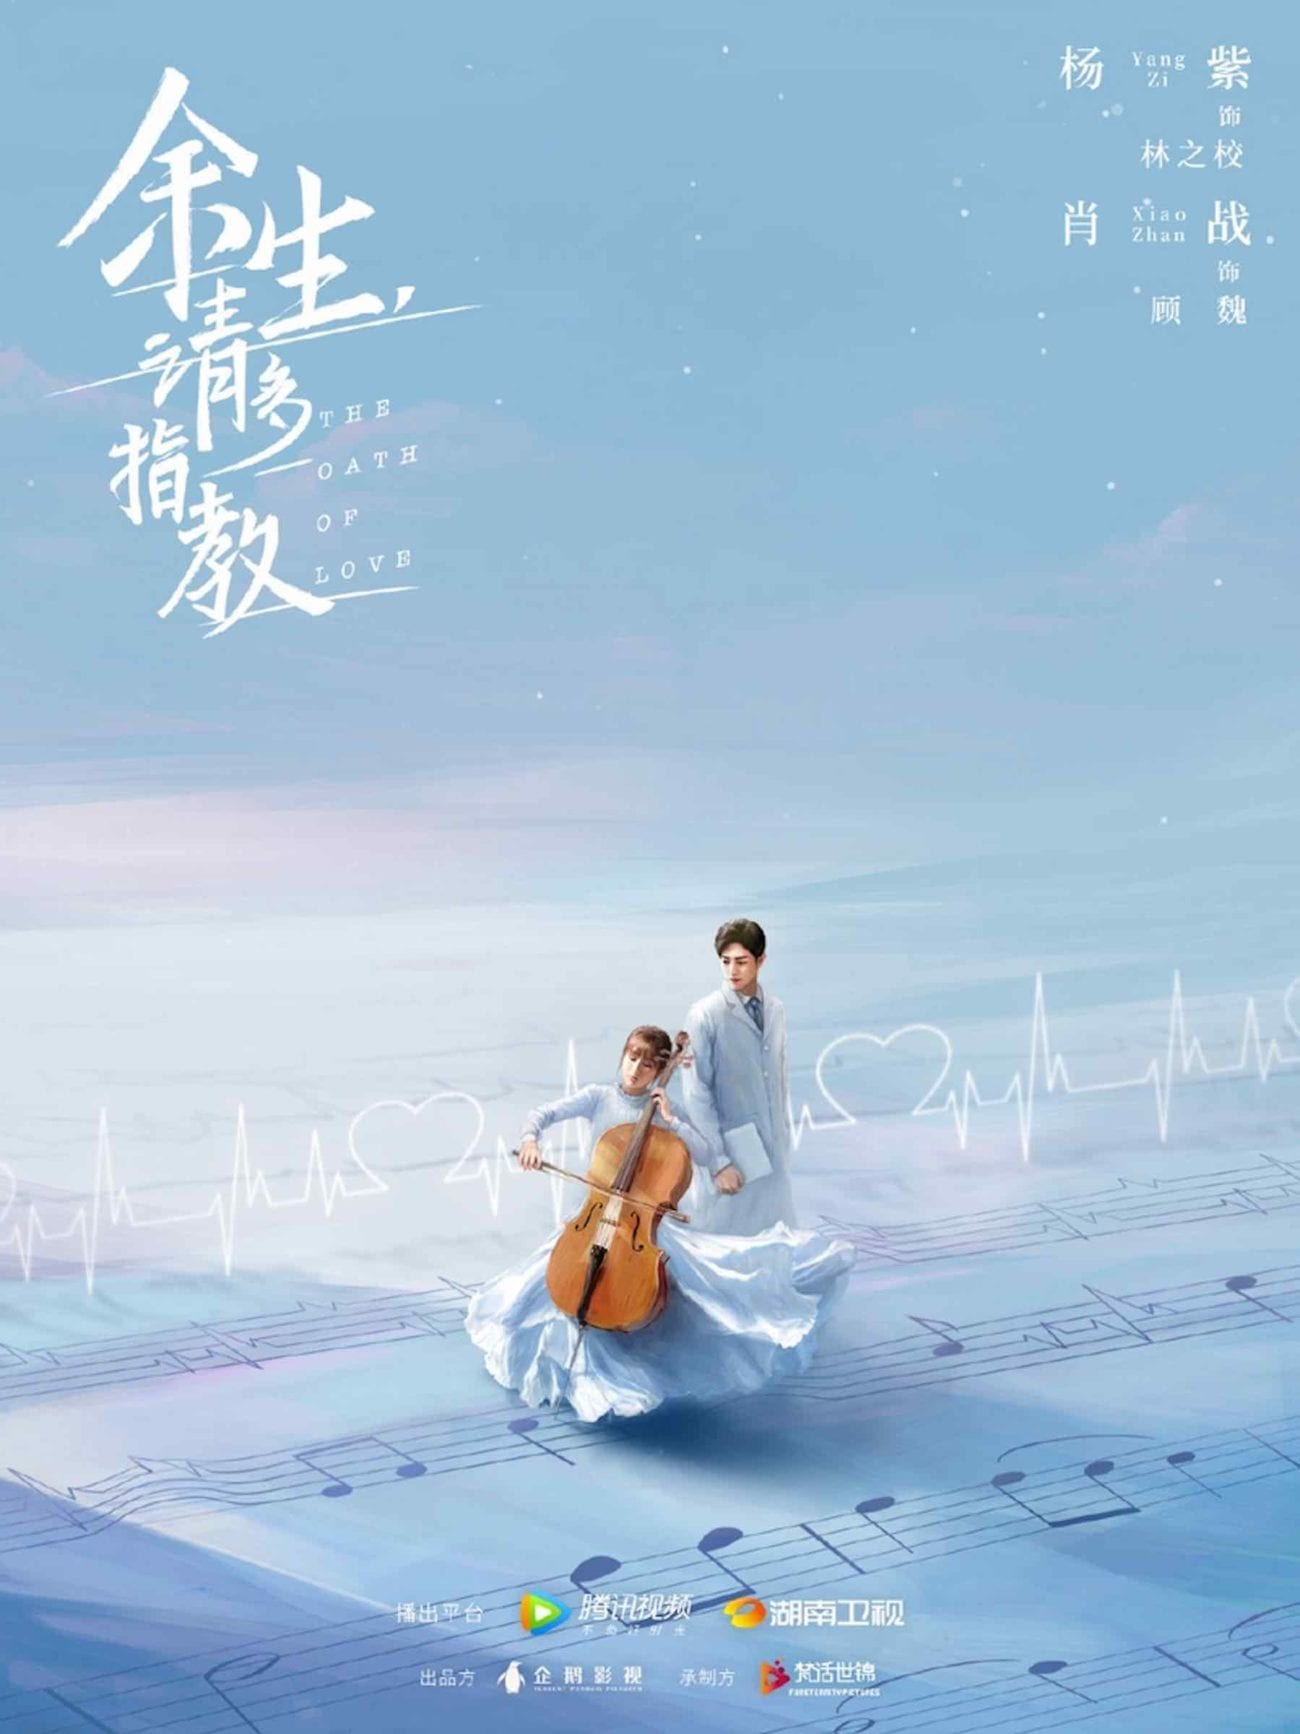 Been getting a little twitchy waiting for your next Xiao Zhan fix? Us too! We've compiled everything we can find out about Xiao Zhan's 'Oath of Love'.